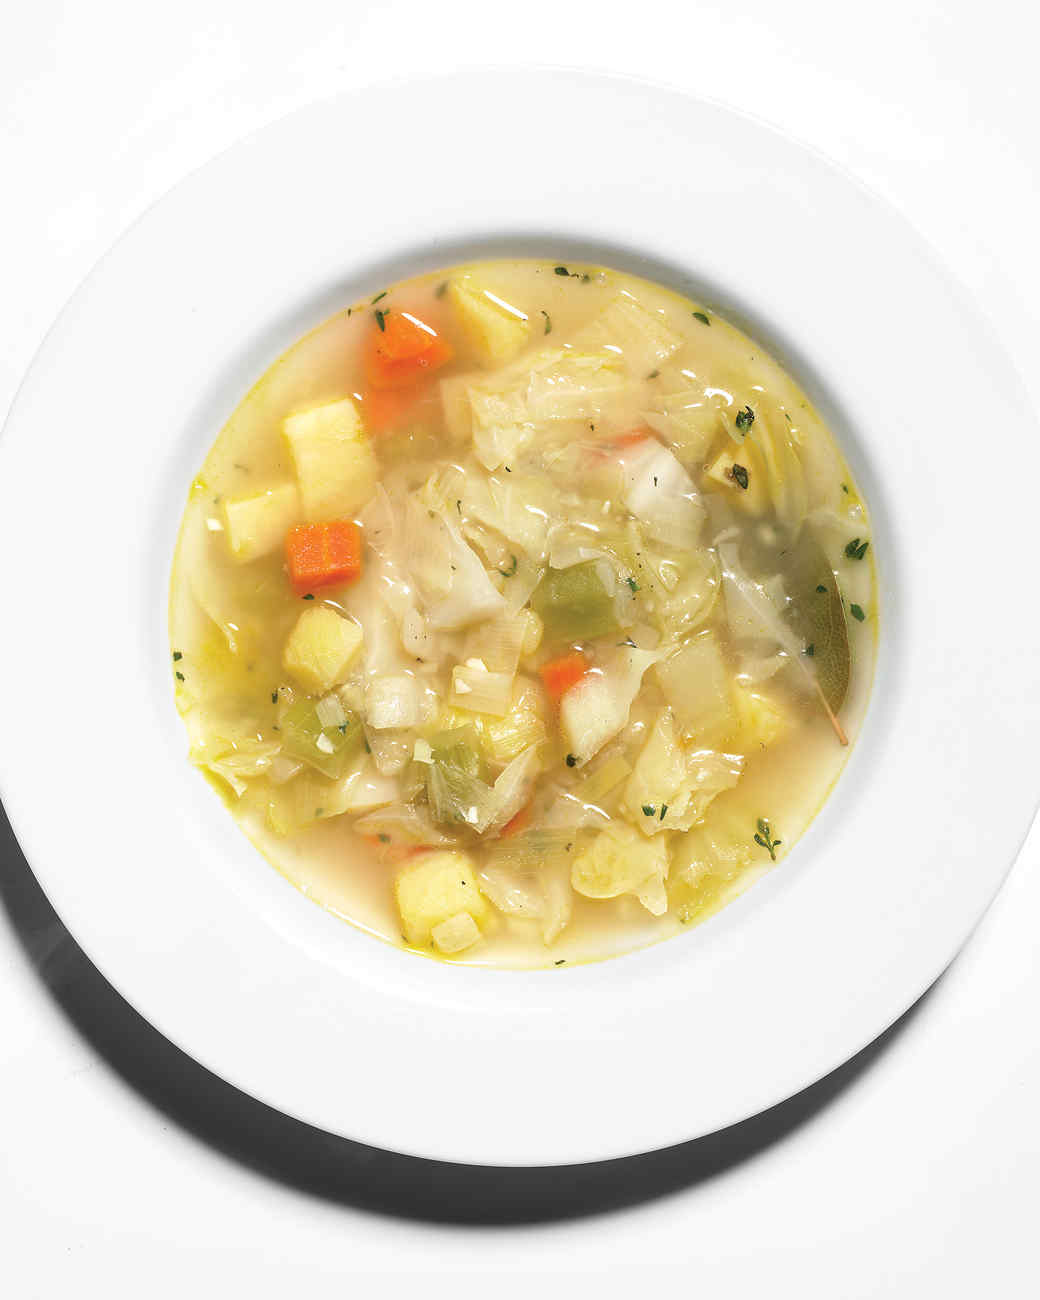 med105087_1209_cabbage_soup.jpg